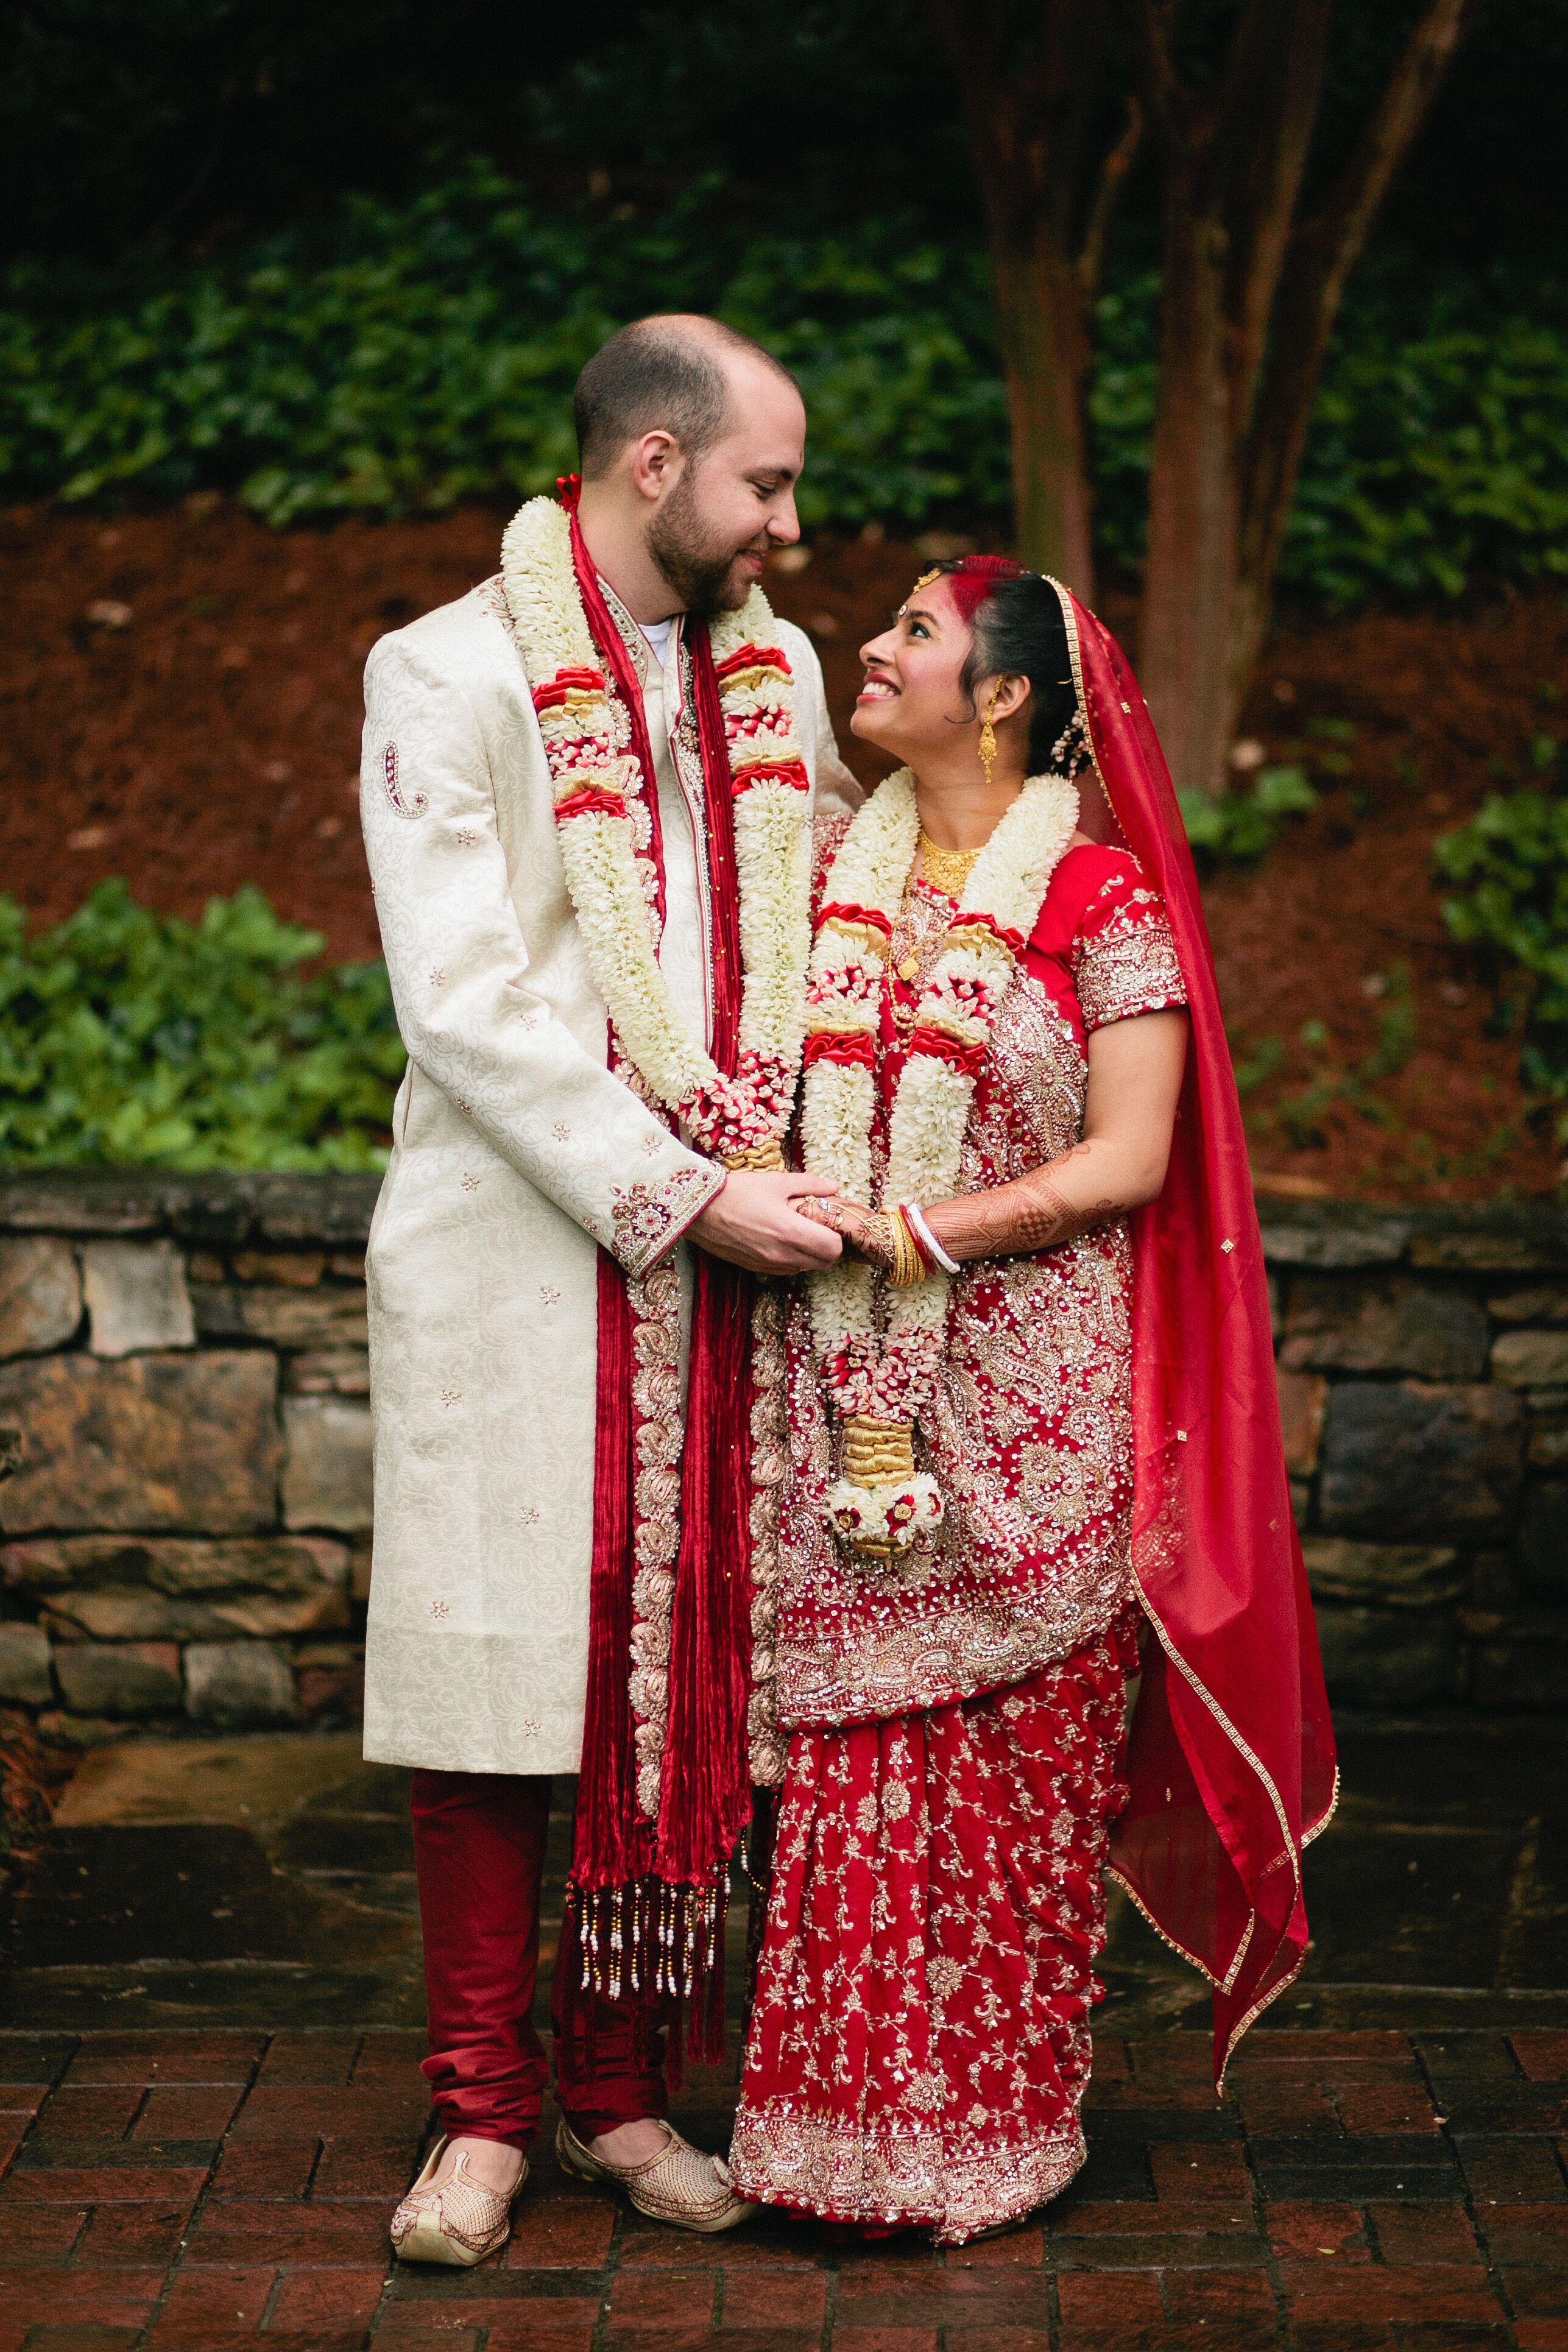 Bride And Groom In Red Traditional Indian Wedding Attire